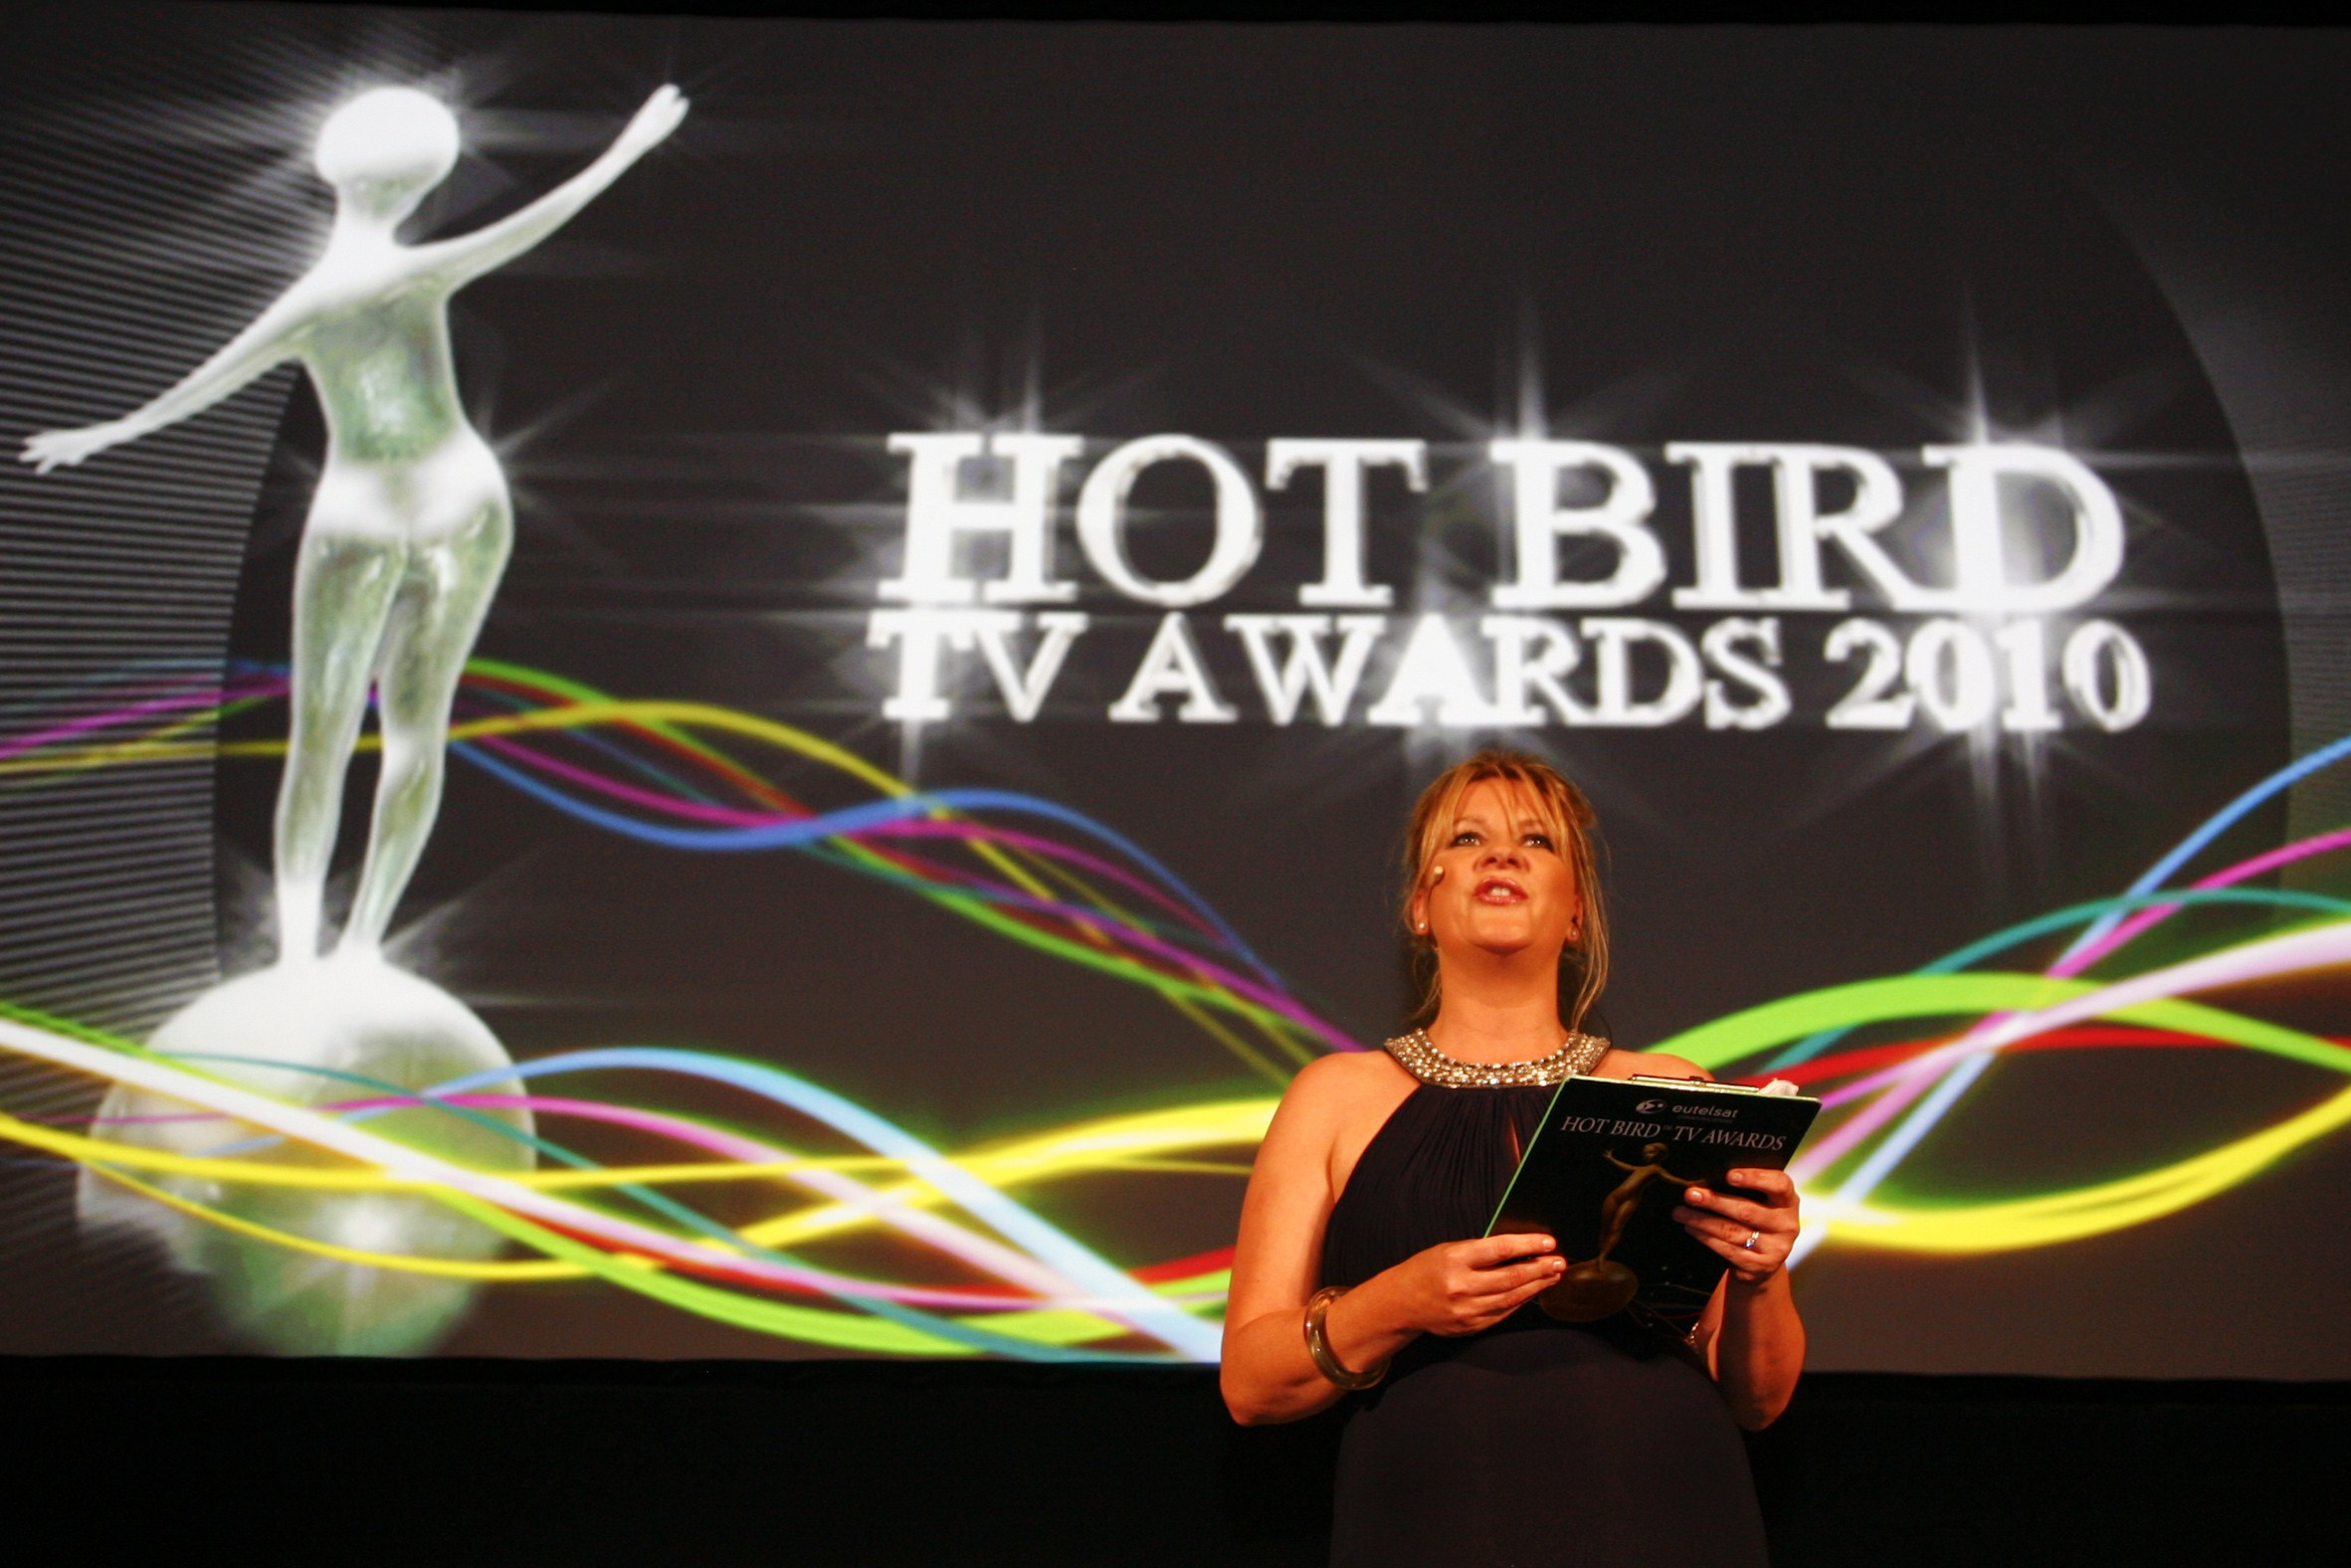 La Notte dei Satelliti, le tv satellitari protagoniste a Venezia per gli Hot Bird TV Awards